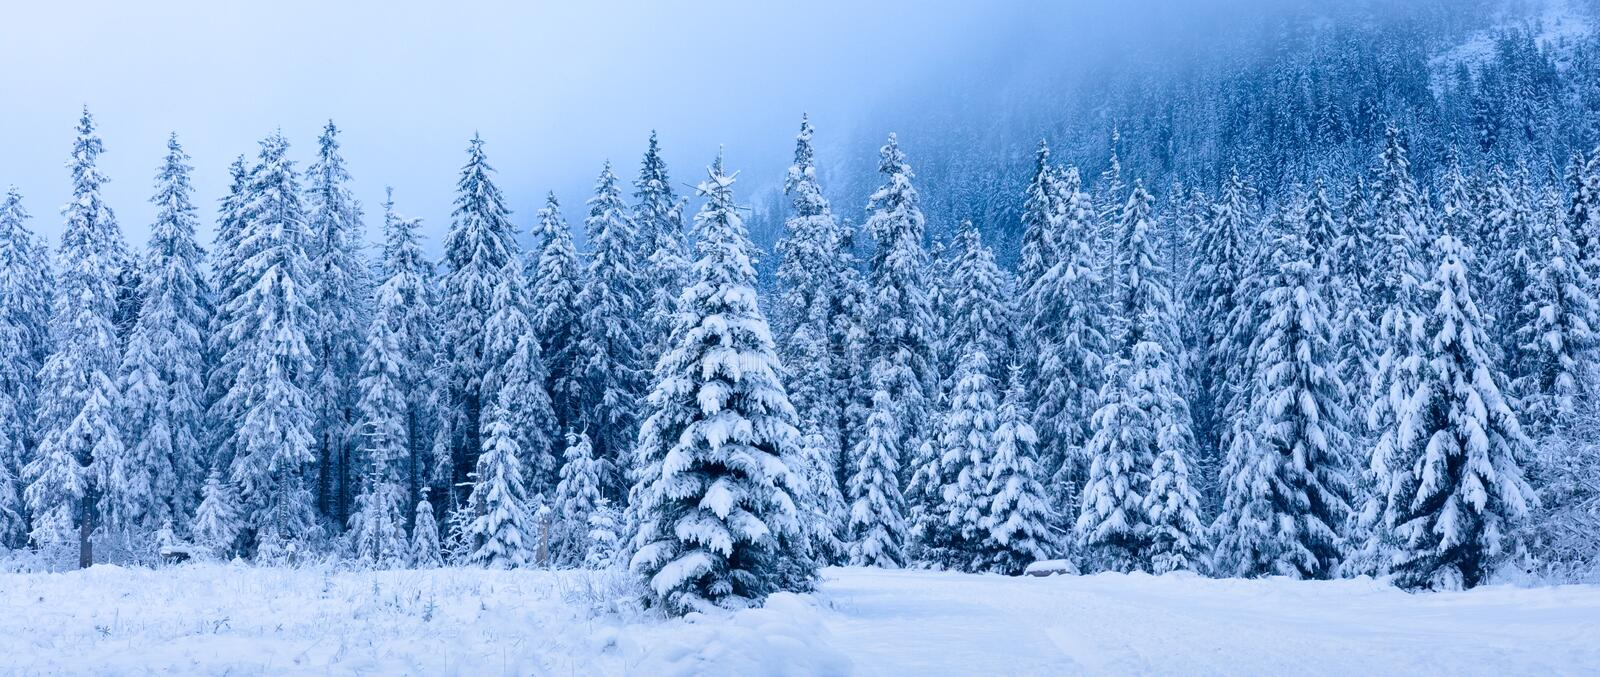 Winter landscape. Panoramic winter forest. Snowy Christmas trees in mountains. Frosty nature in mountain valley royalty free stock photos